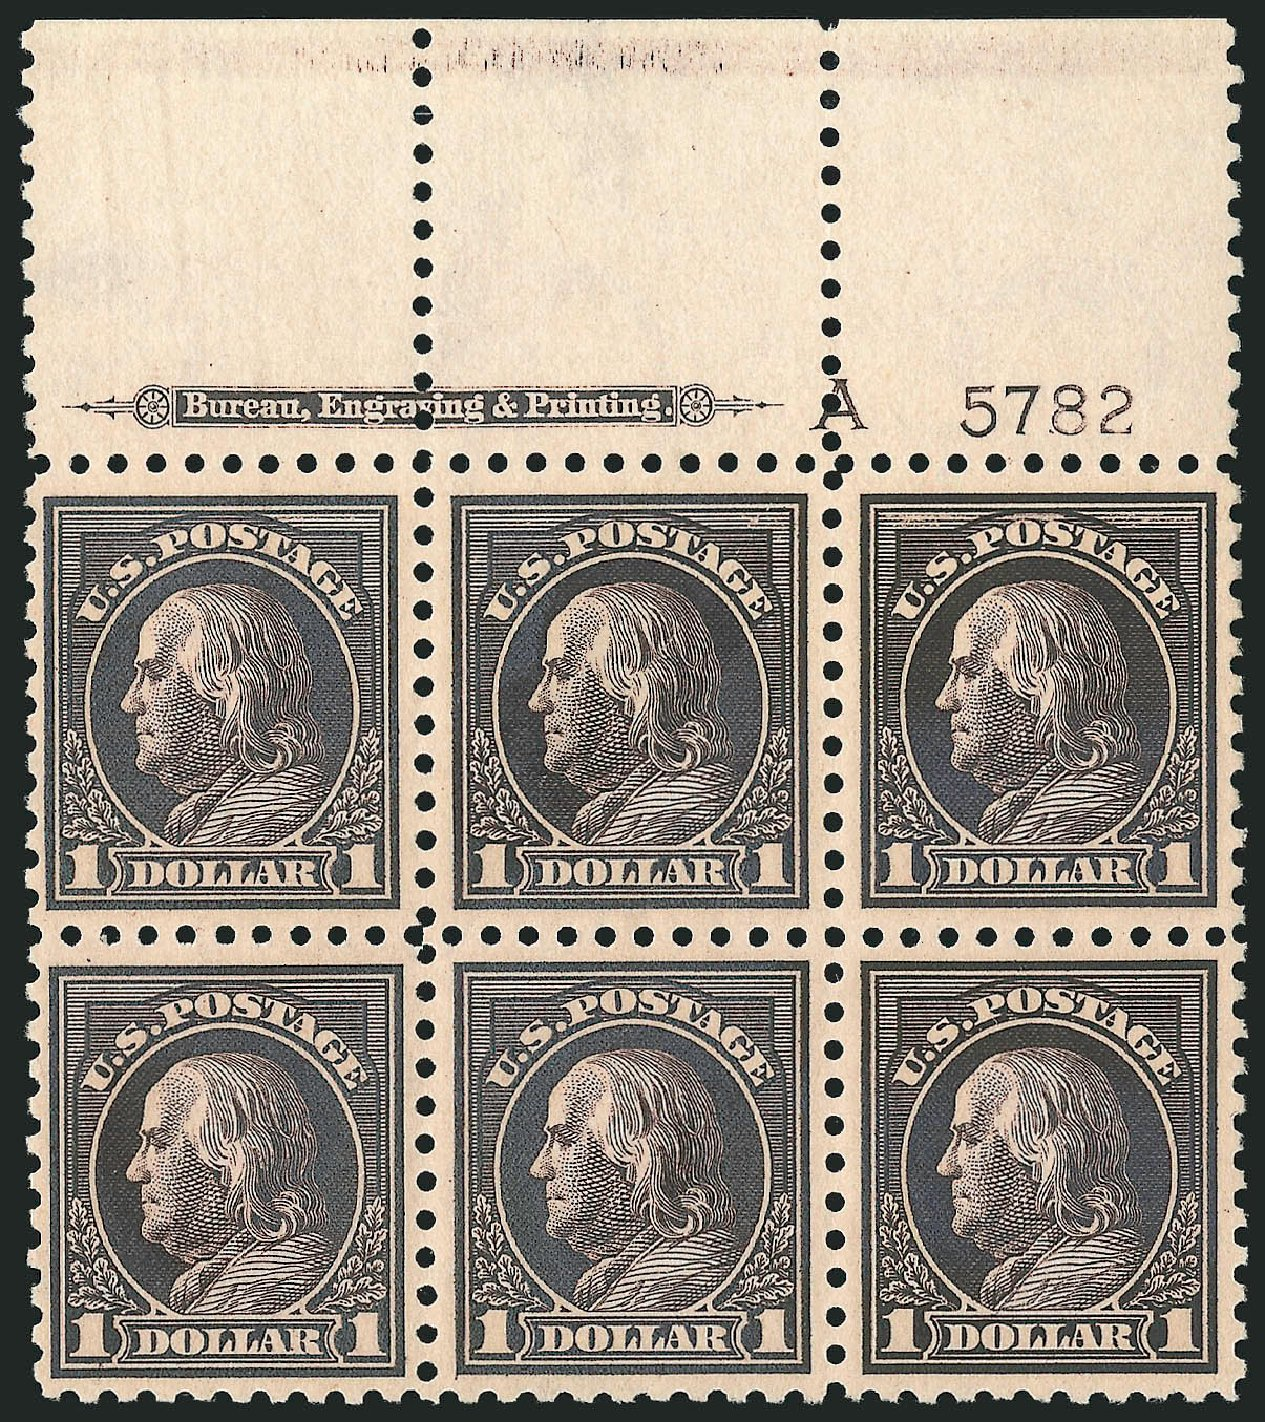 Value of US Stamps Scott 460: US$1.00 1916 Franklin Perf 10. Robert Siegel Auction Galleries, Apr 2015, Sale 1096, Lot 706